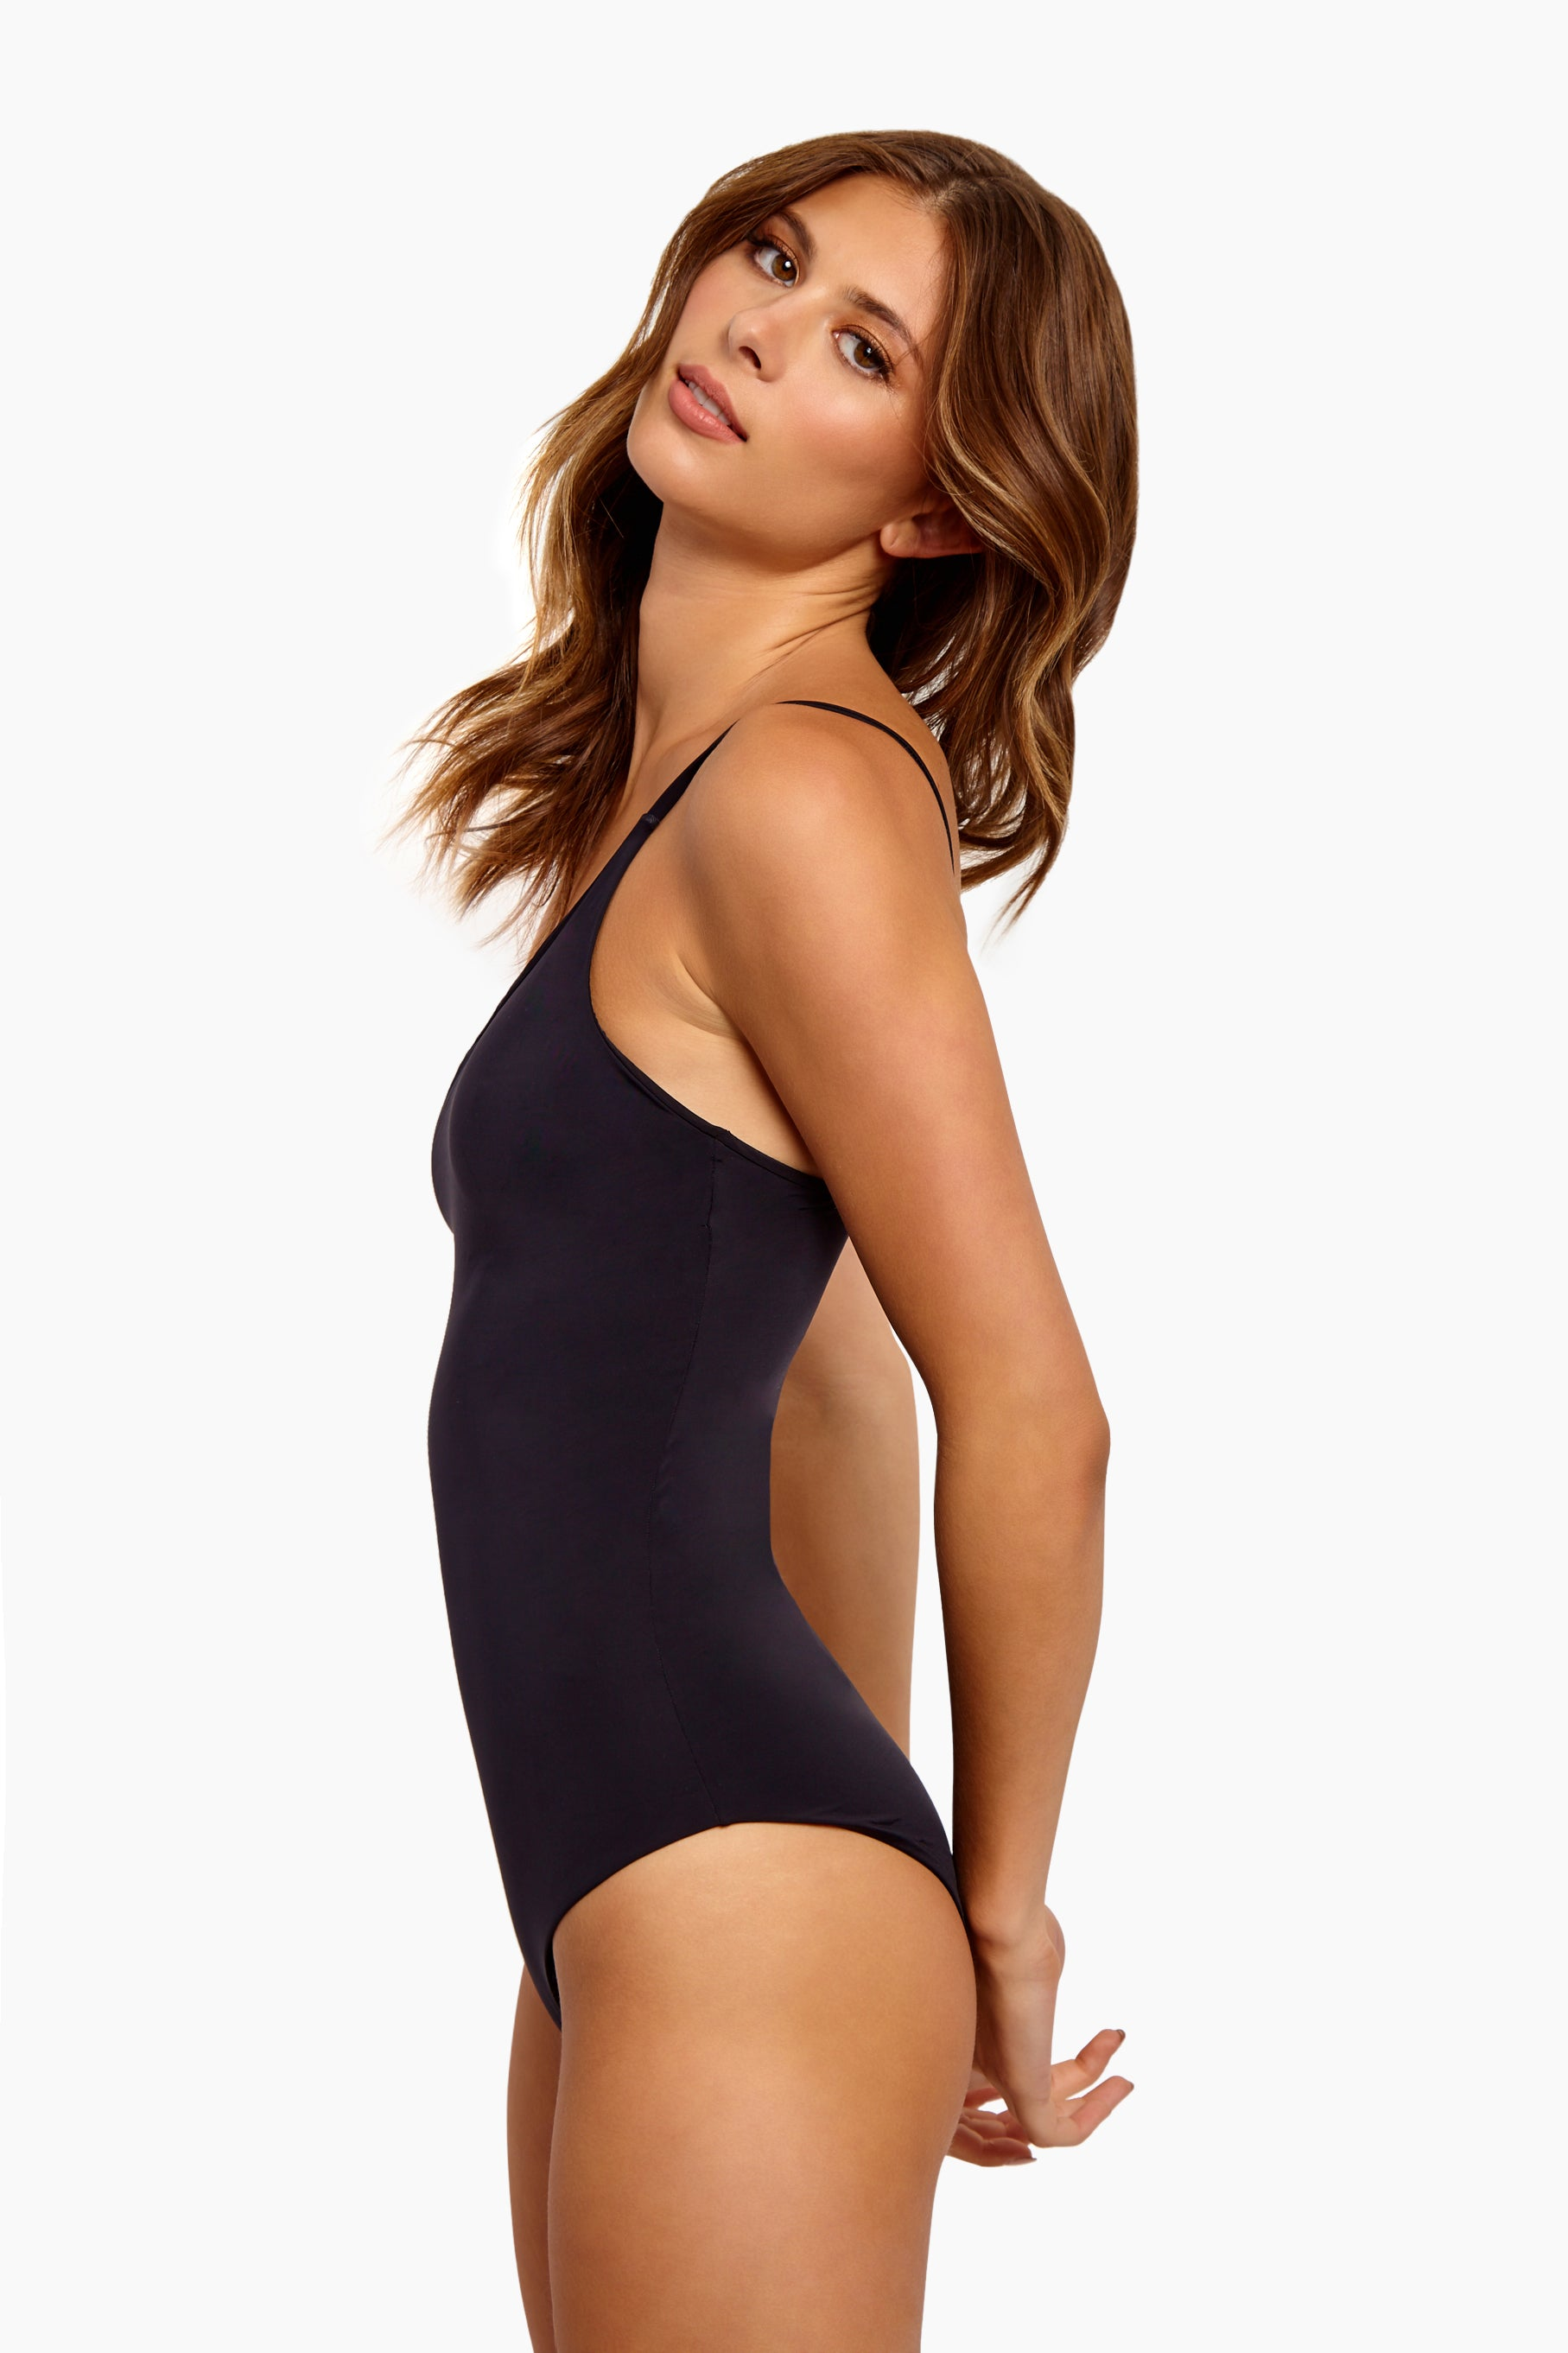 HAIGHT Diagonal One Shoulder One Piece Swimsuit - Black One Piece | Black| Haight Diagonal One Shoulder One Piece Swimsuit - Black Fits true to size One shoulder piece swimsuit in black with single thin strap Full coverage Lined Pull on Content:  100% lycra Hand wash Side View